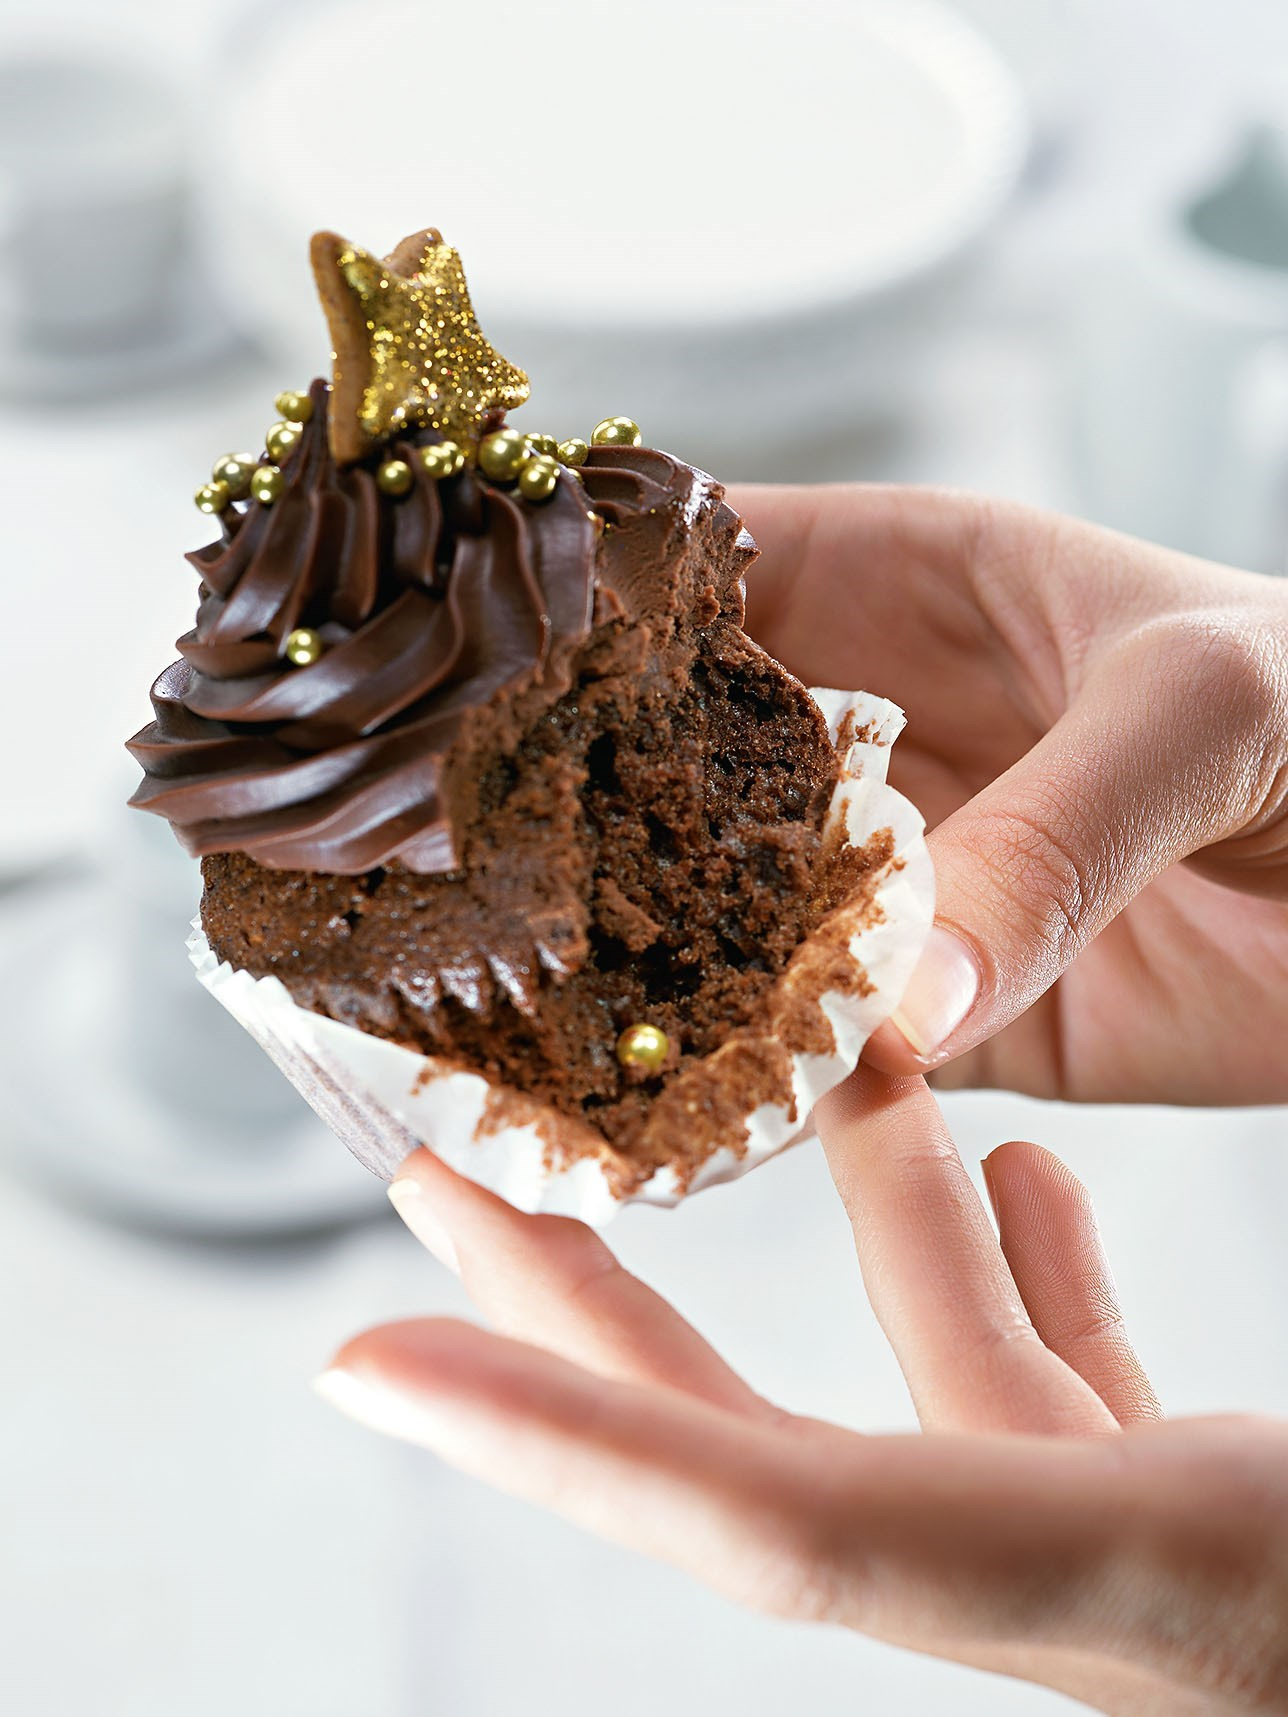 Chocolate cupcake with ganache cream